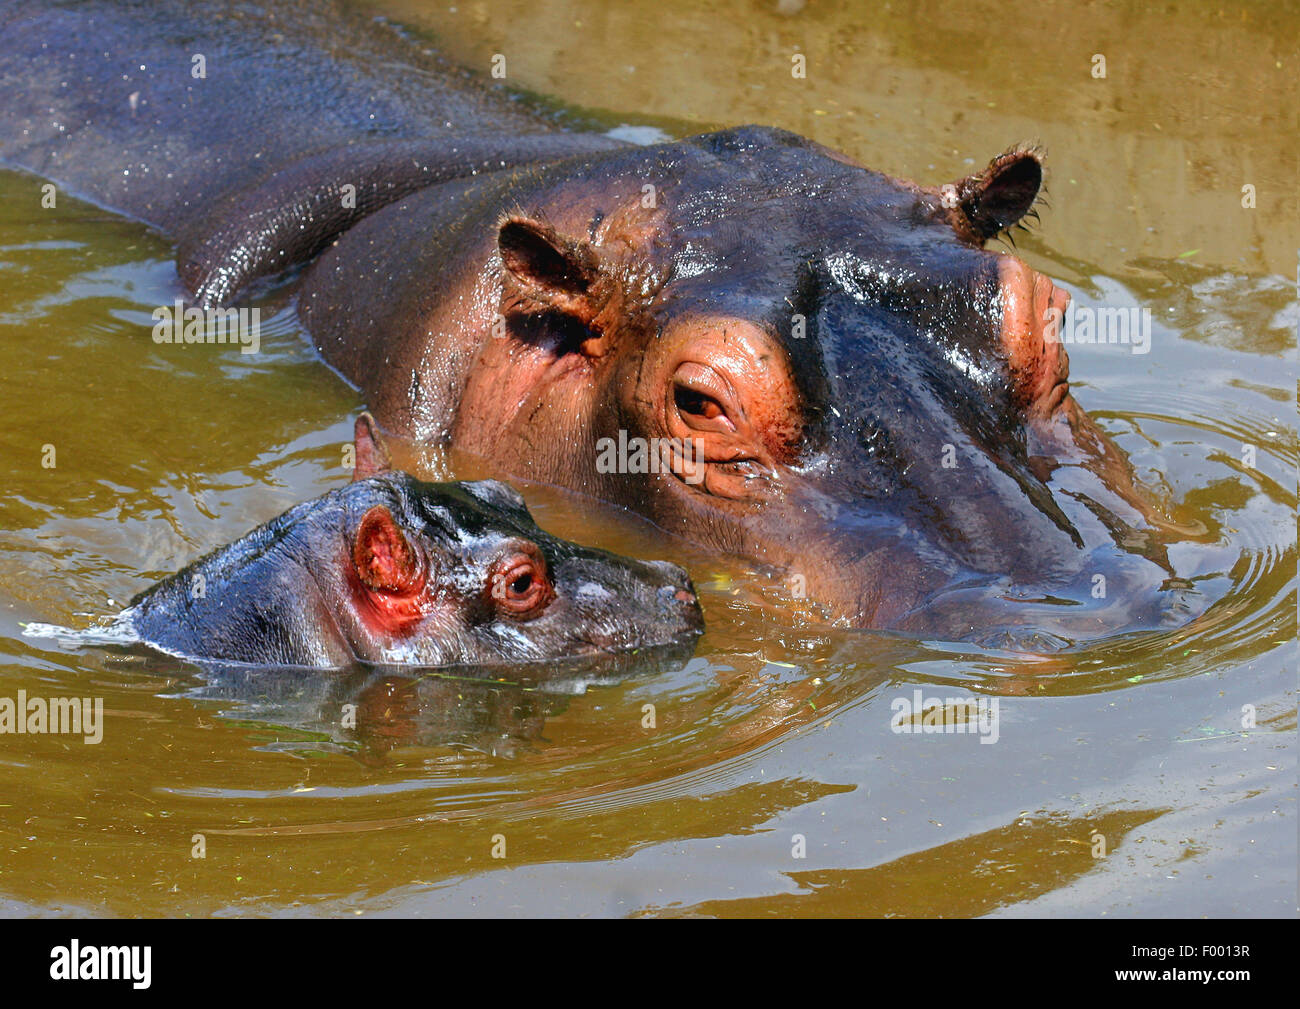 hippopotamus, hippo, Common hippopotamus (Hippopotamus amphibius), adult with pup in stretch of water, Africa - Stock Image